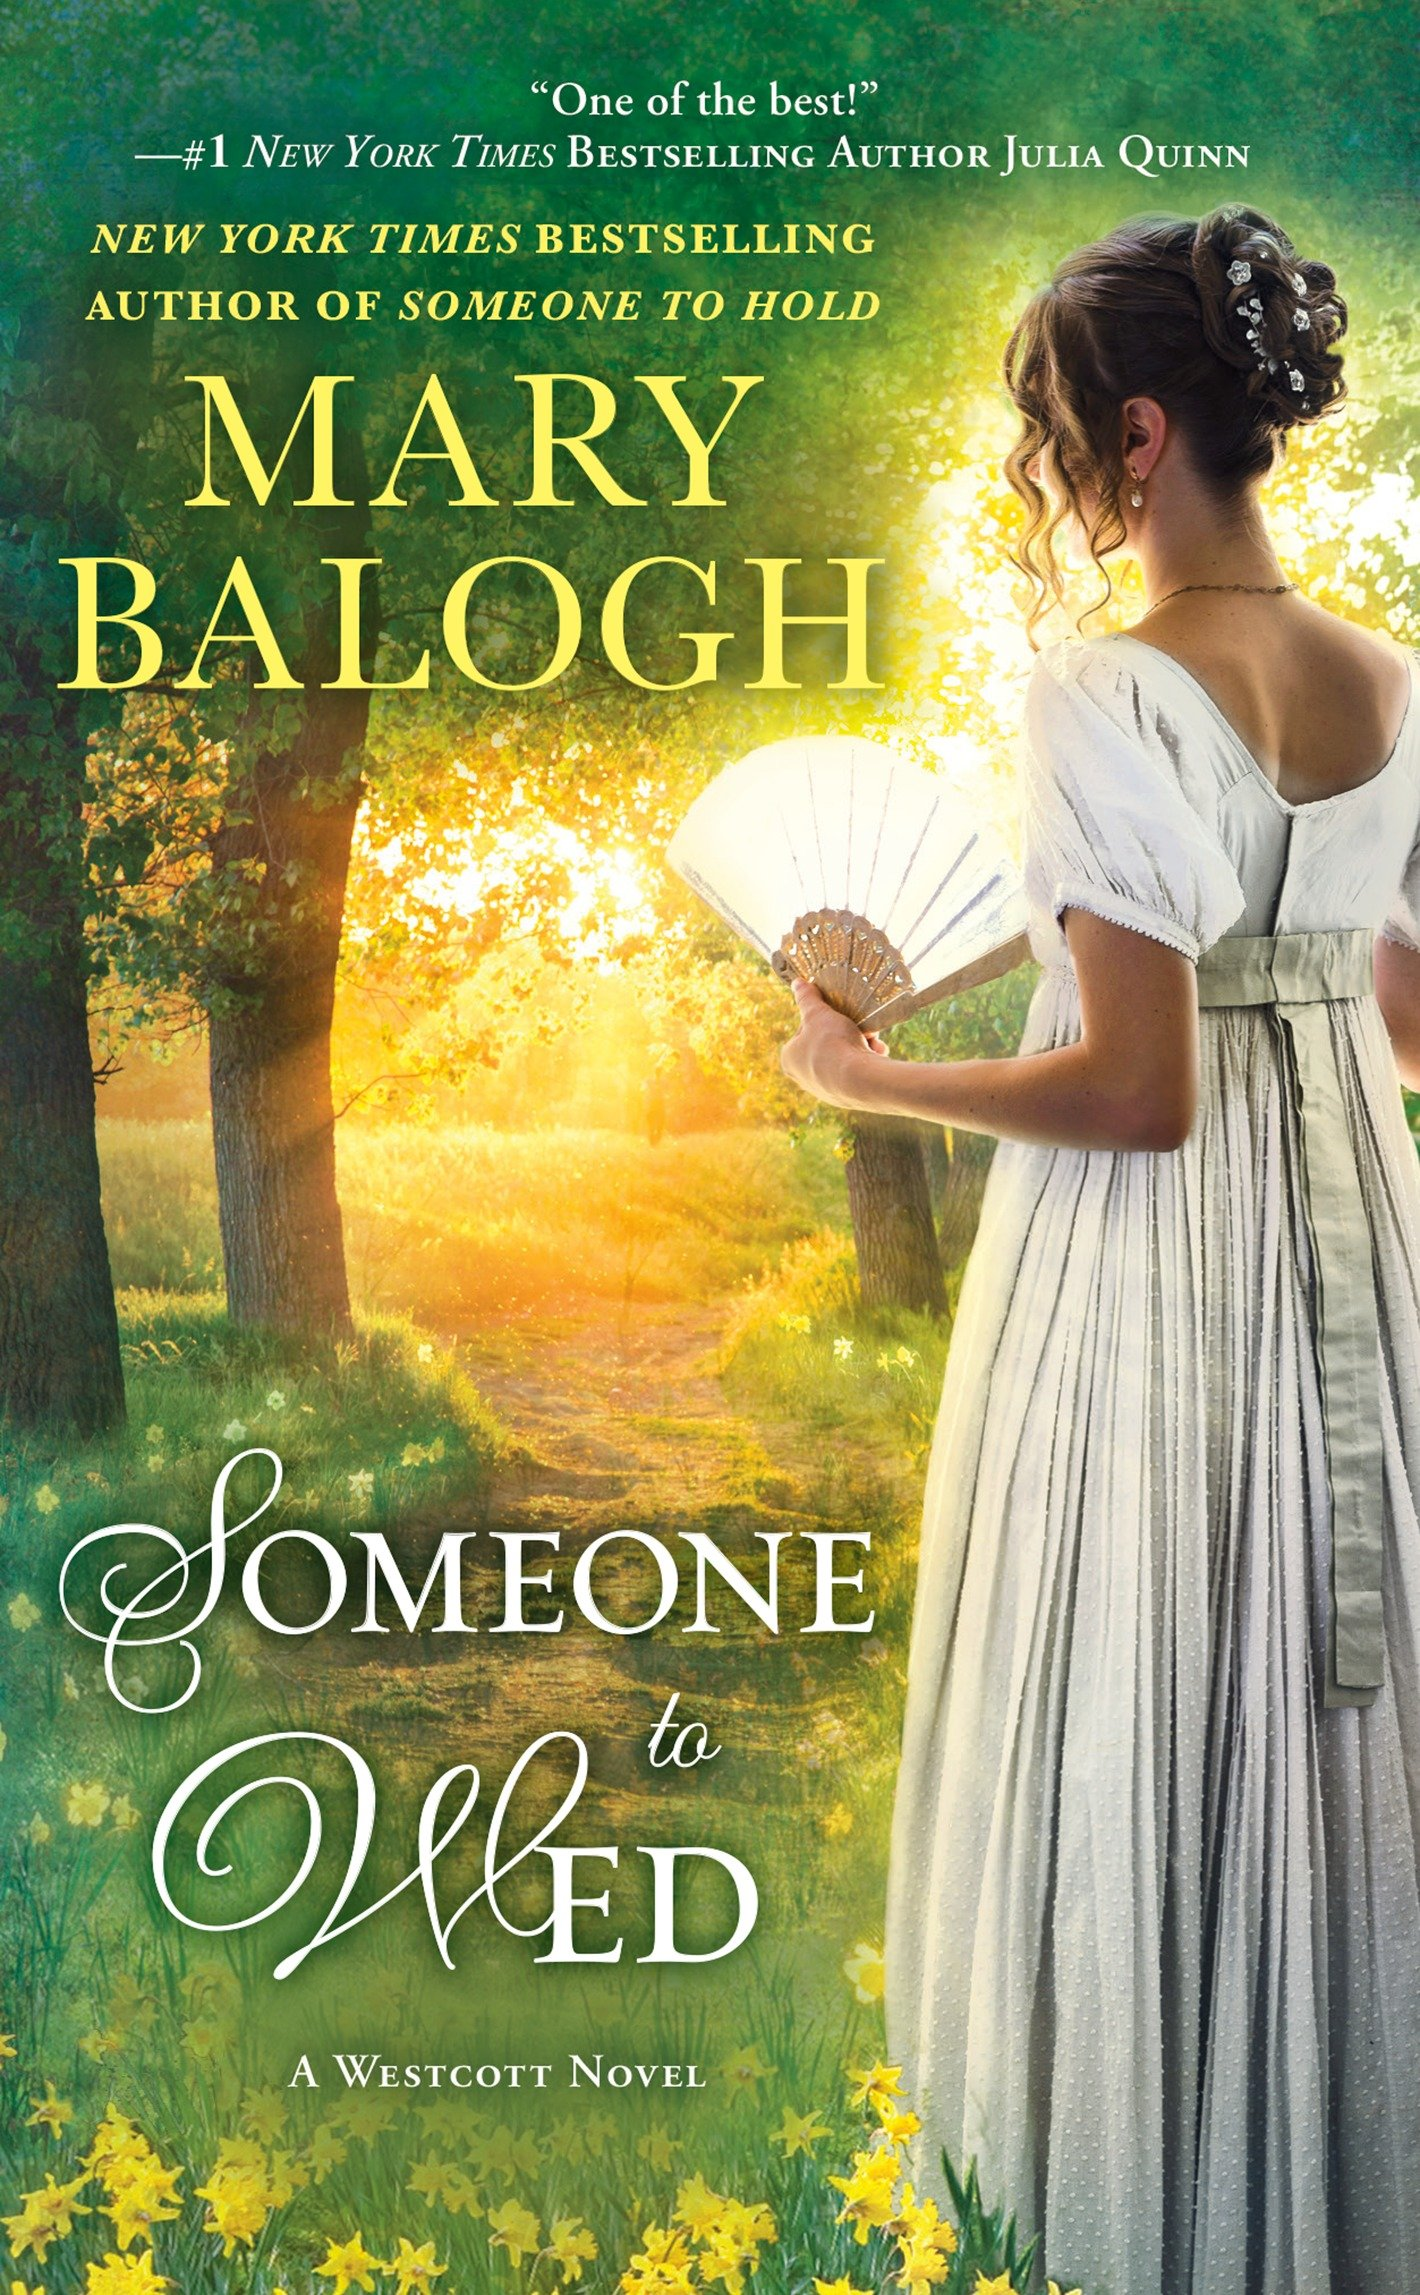 Someone to wed a Westcott novel cover image